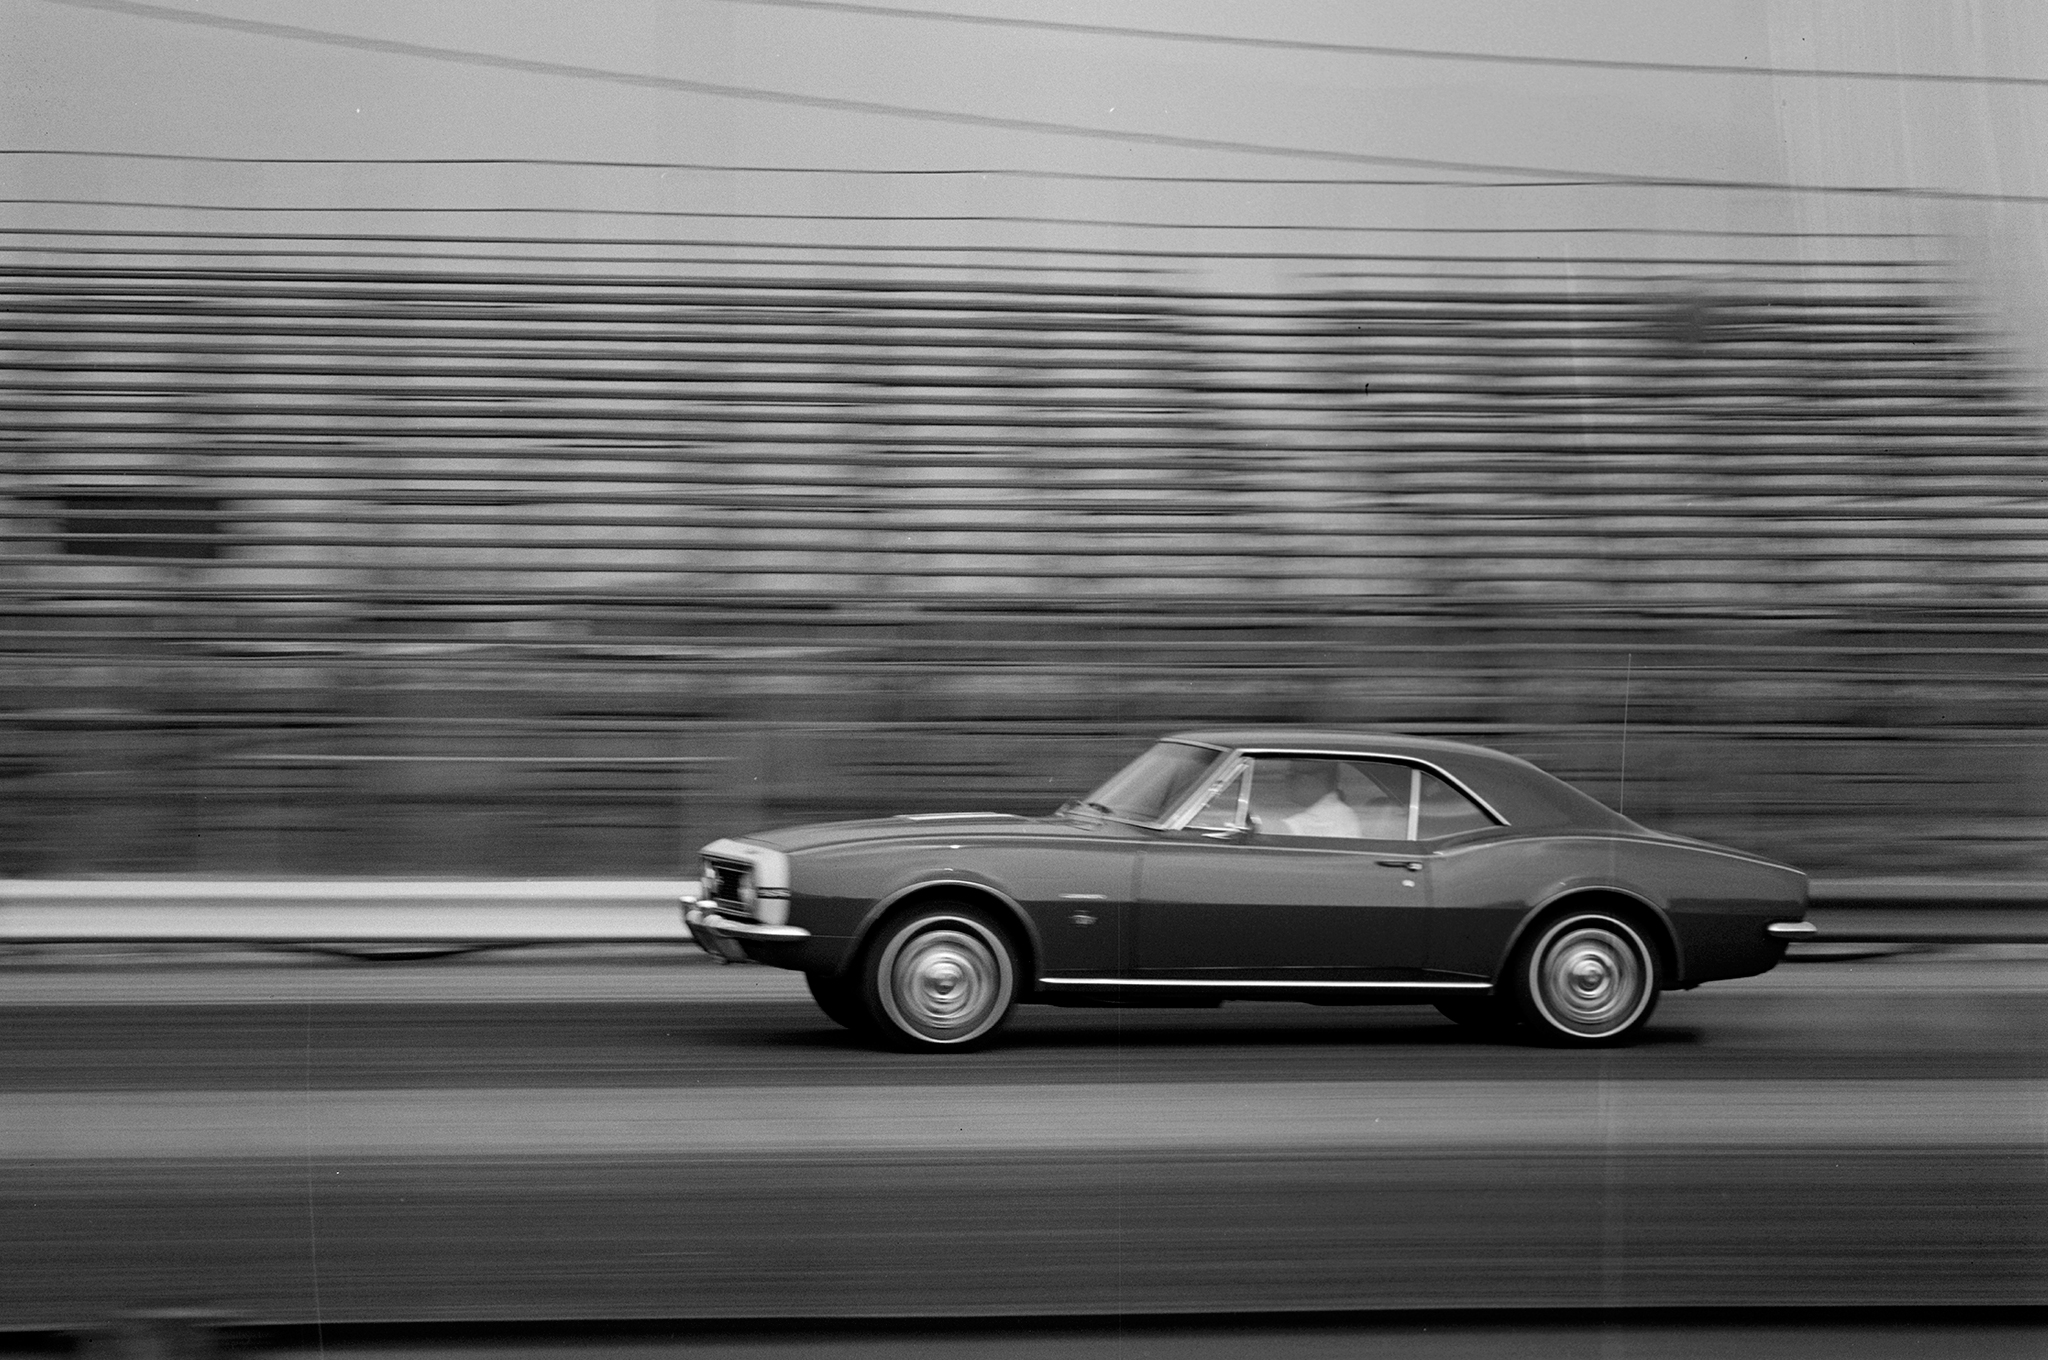 Four months before Chevrolet's ponycar arrived in dealer showrooms, Motor Trend and HOT ROD were testing the first Camaro in California. The car and its future owner are pictured here in June 1966.